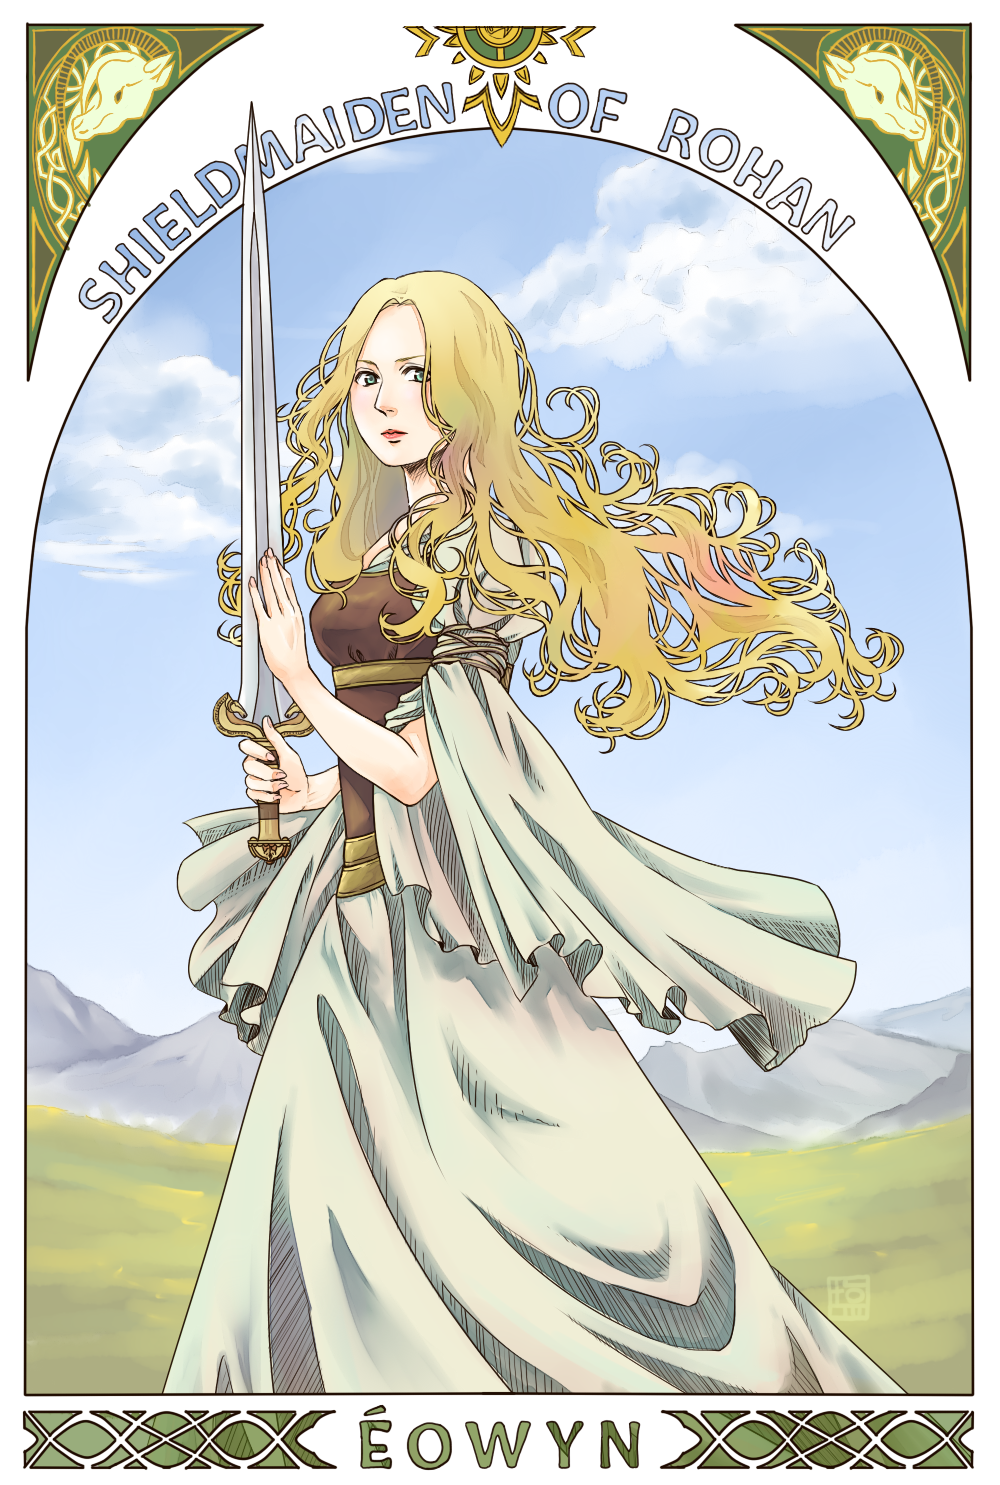 White Lady By 2NaCldeviantart On DeviantART Great Art Nouveau Style Love Her Gown And Hair Shes Also A Straight Up BAMF So